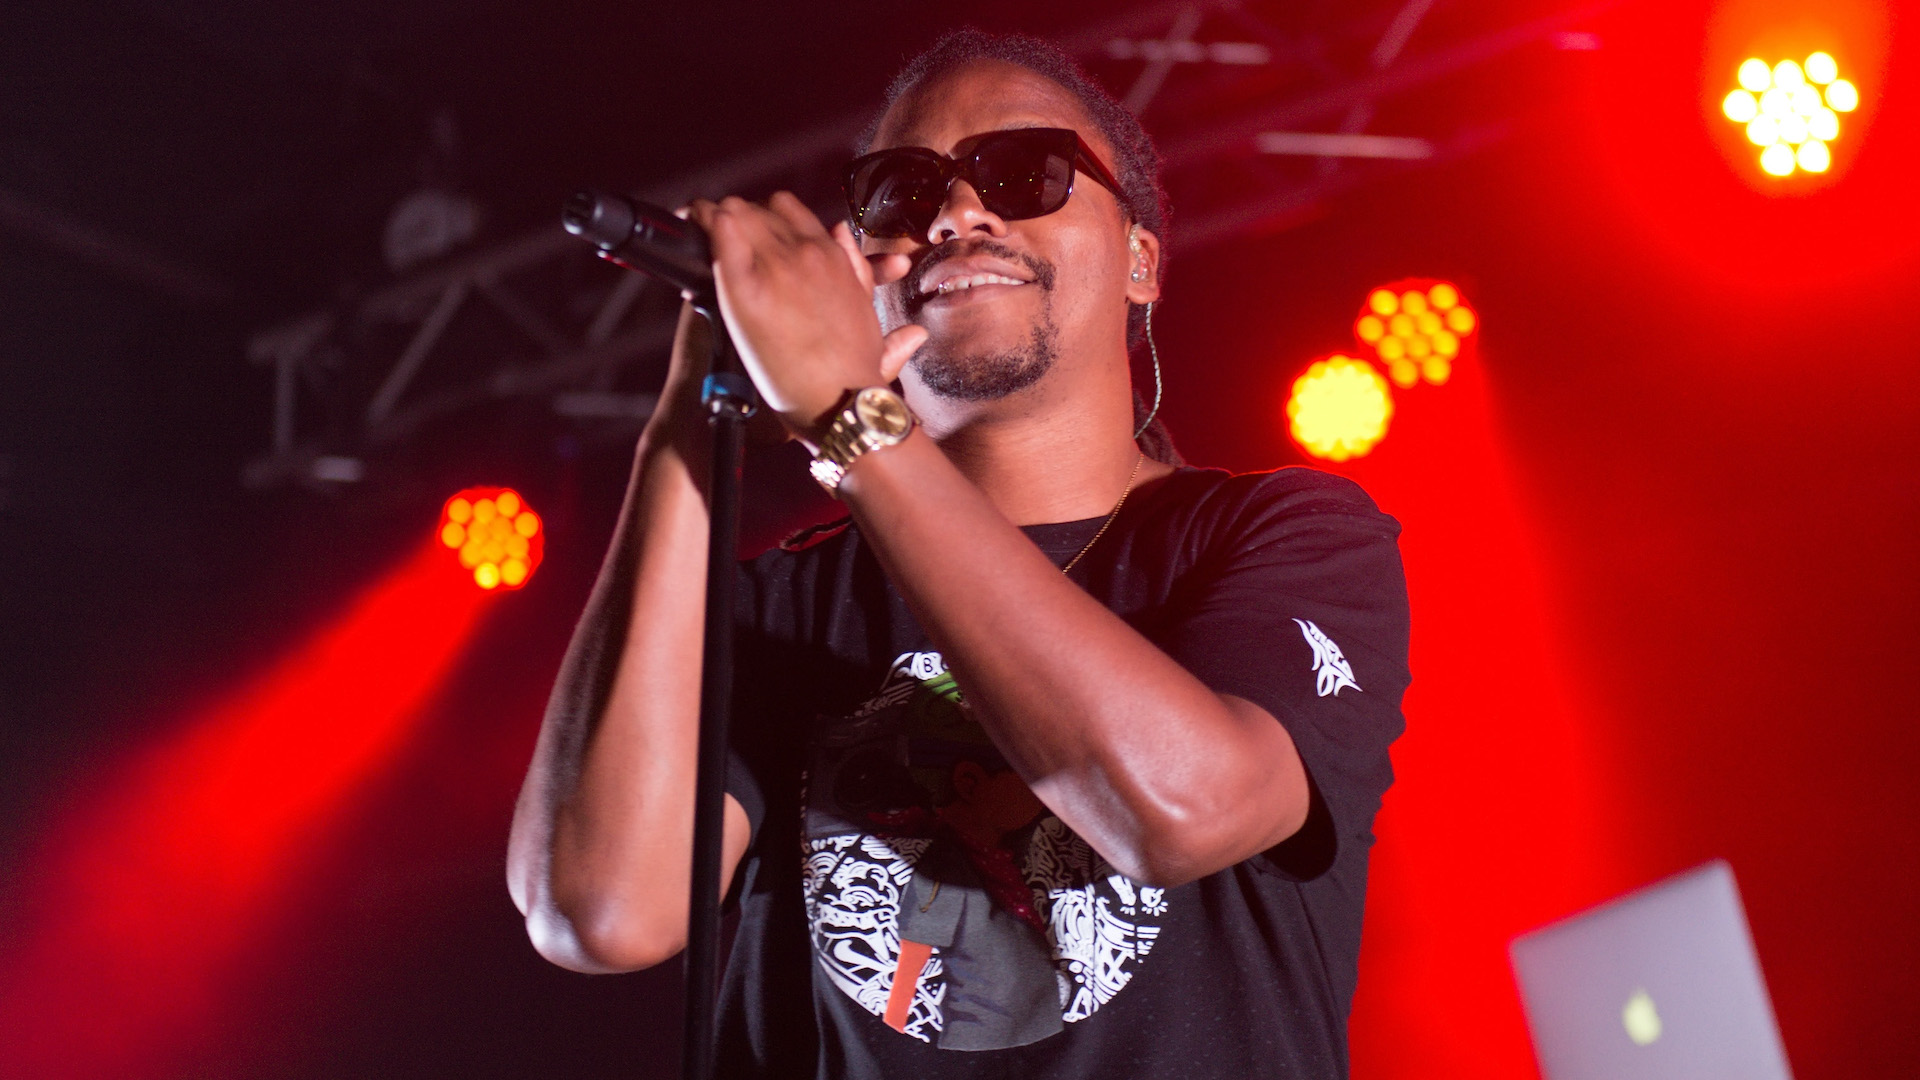 Watch Lupe Fiasco and UMI's Livestream Charity Concert